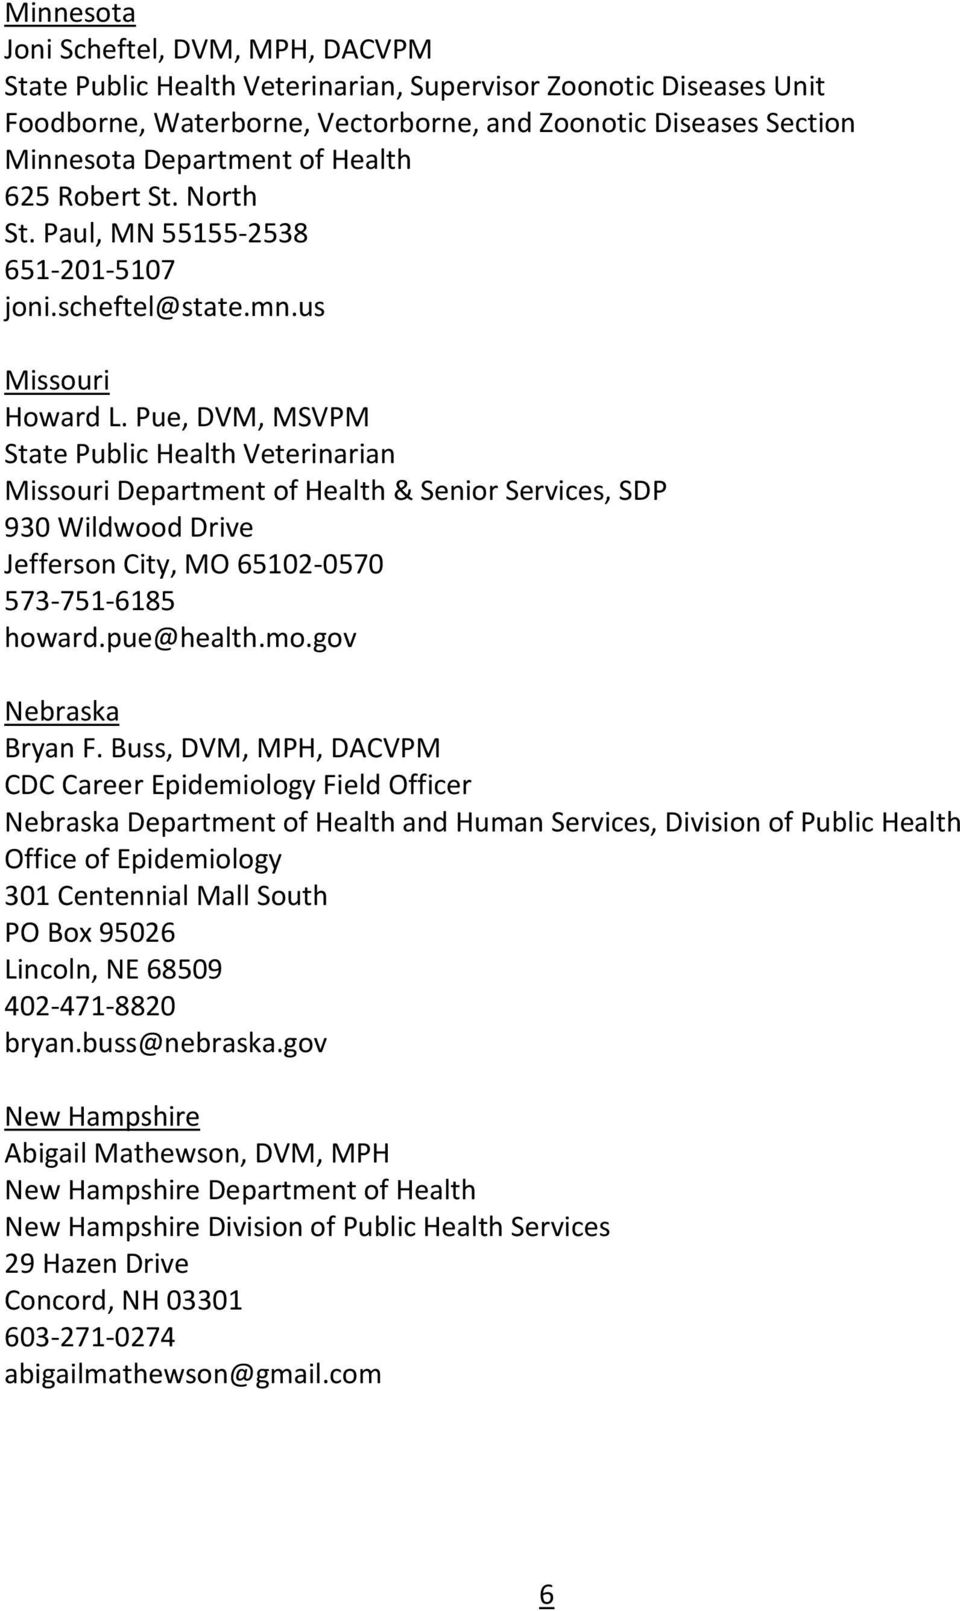 Pue, DVM, MSVPM Missouri Department of Health & Senior Services, SDP 930 Wildwood Drive Jefferson City, MO 65102-0570 573-751-6185 howard.pue@health.mo.gov Nebraska Bryan F.